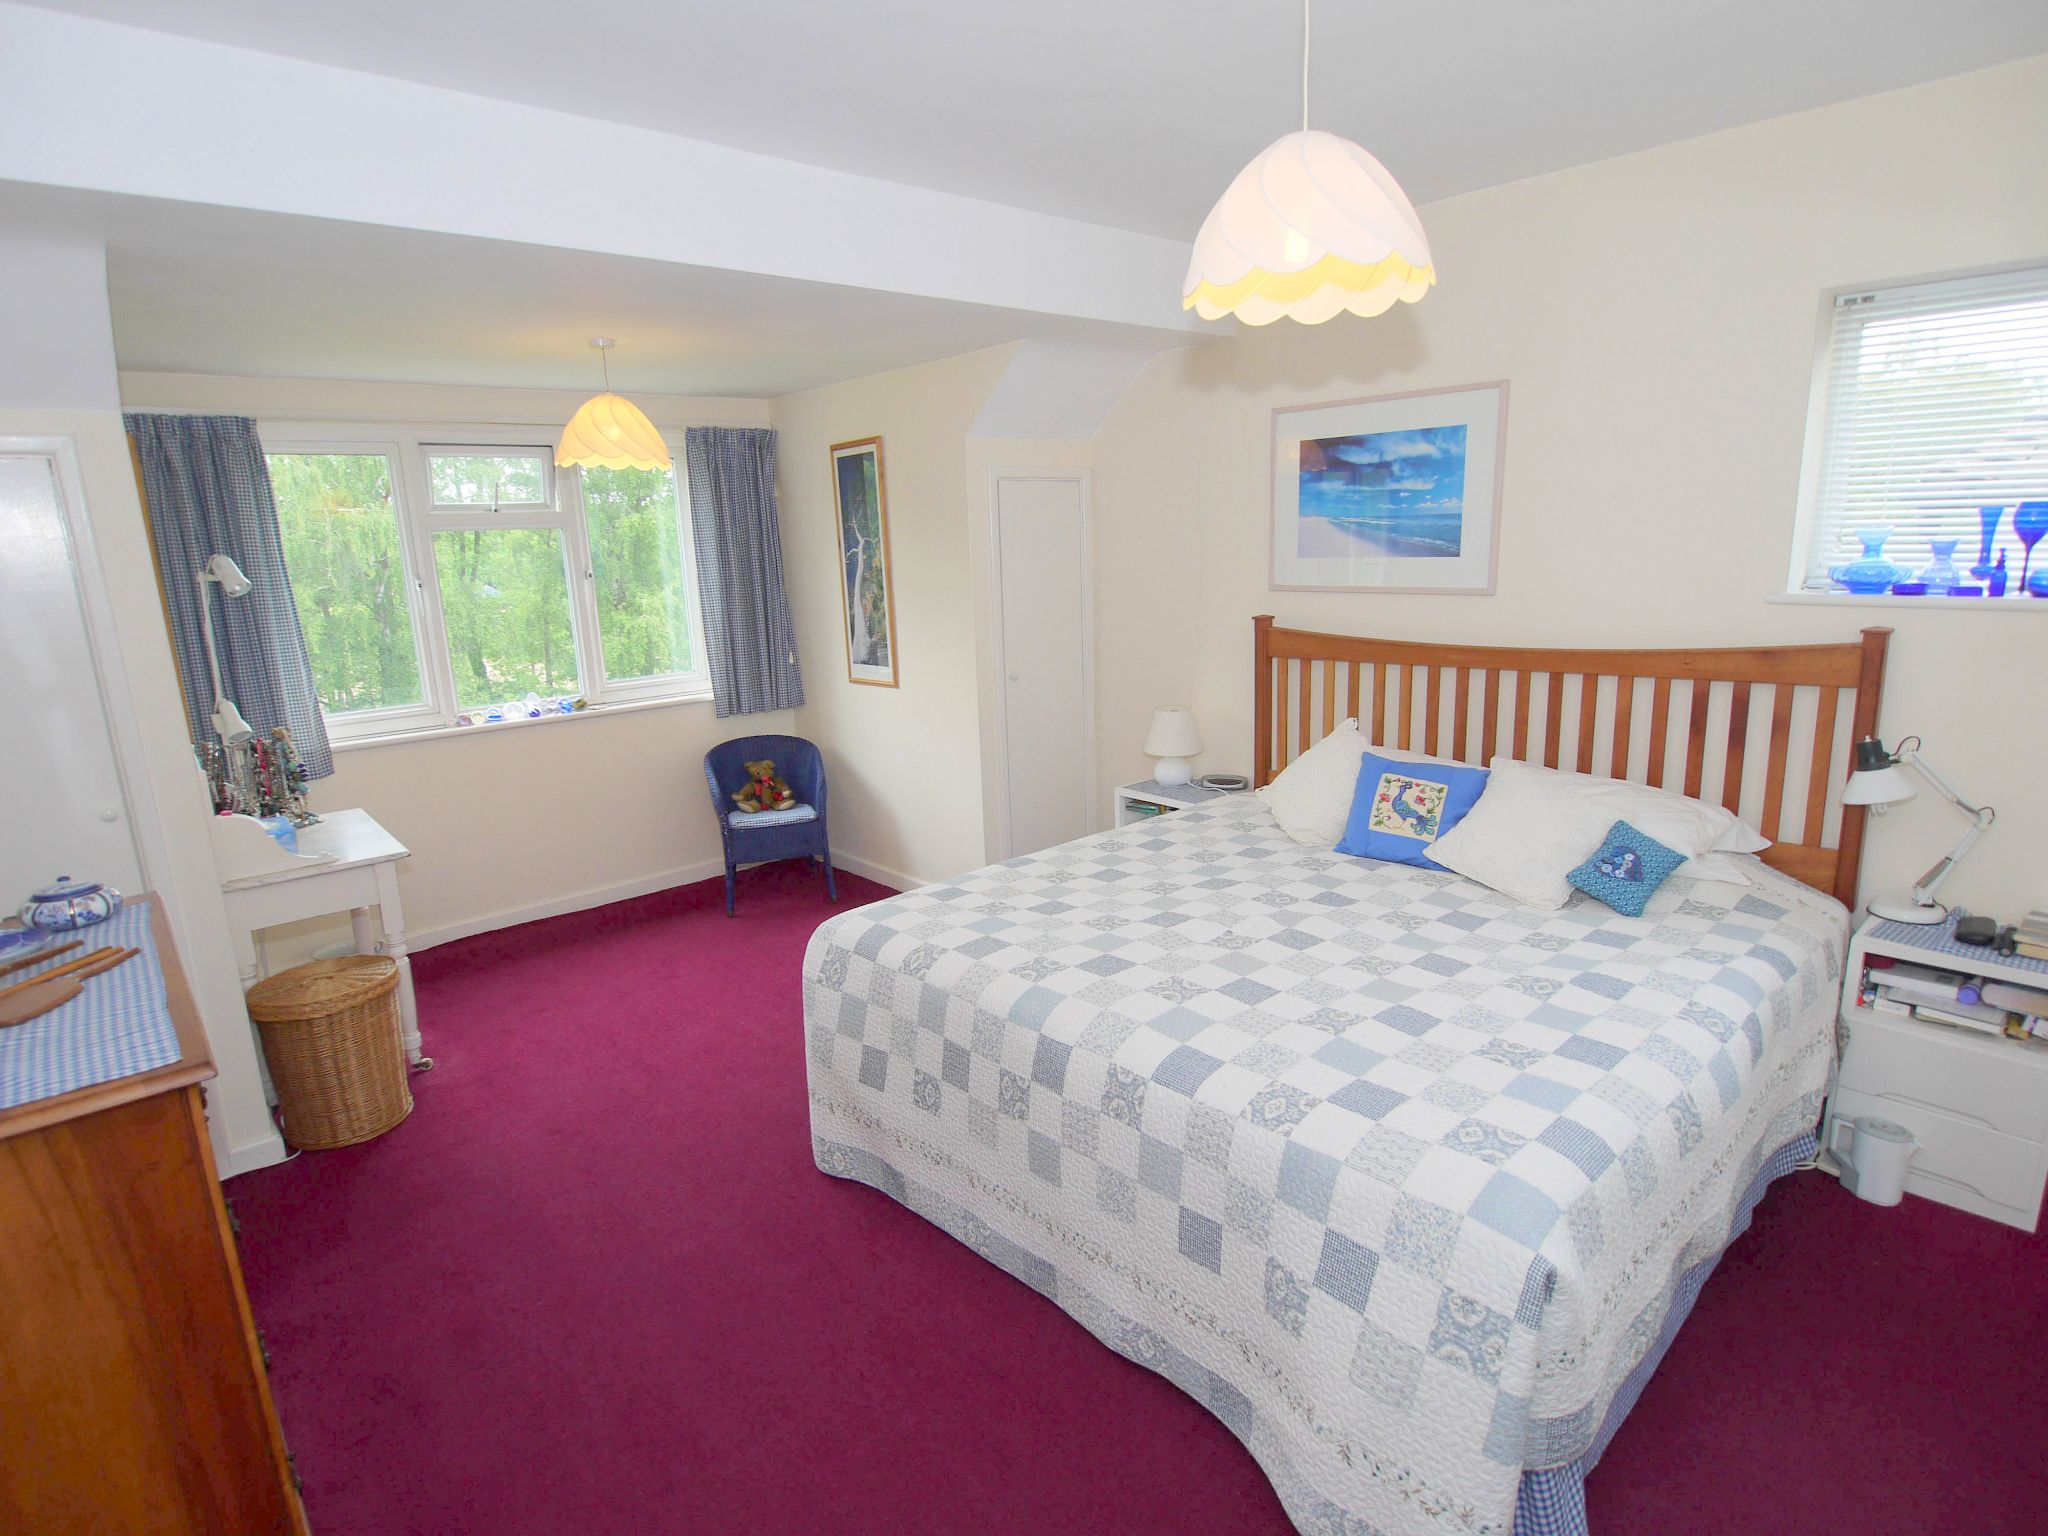 5 bedroom detached house Sold in Sevenoaks - Photograph 8